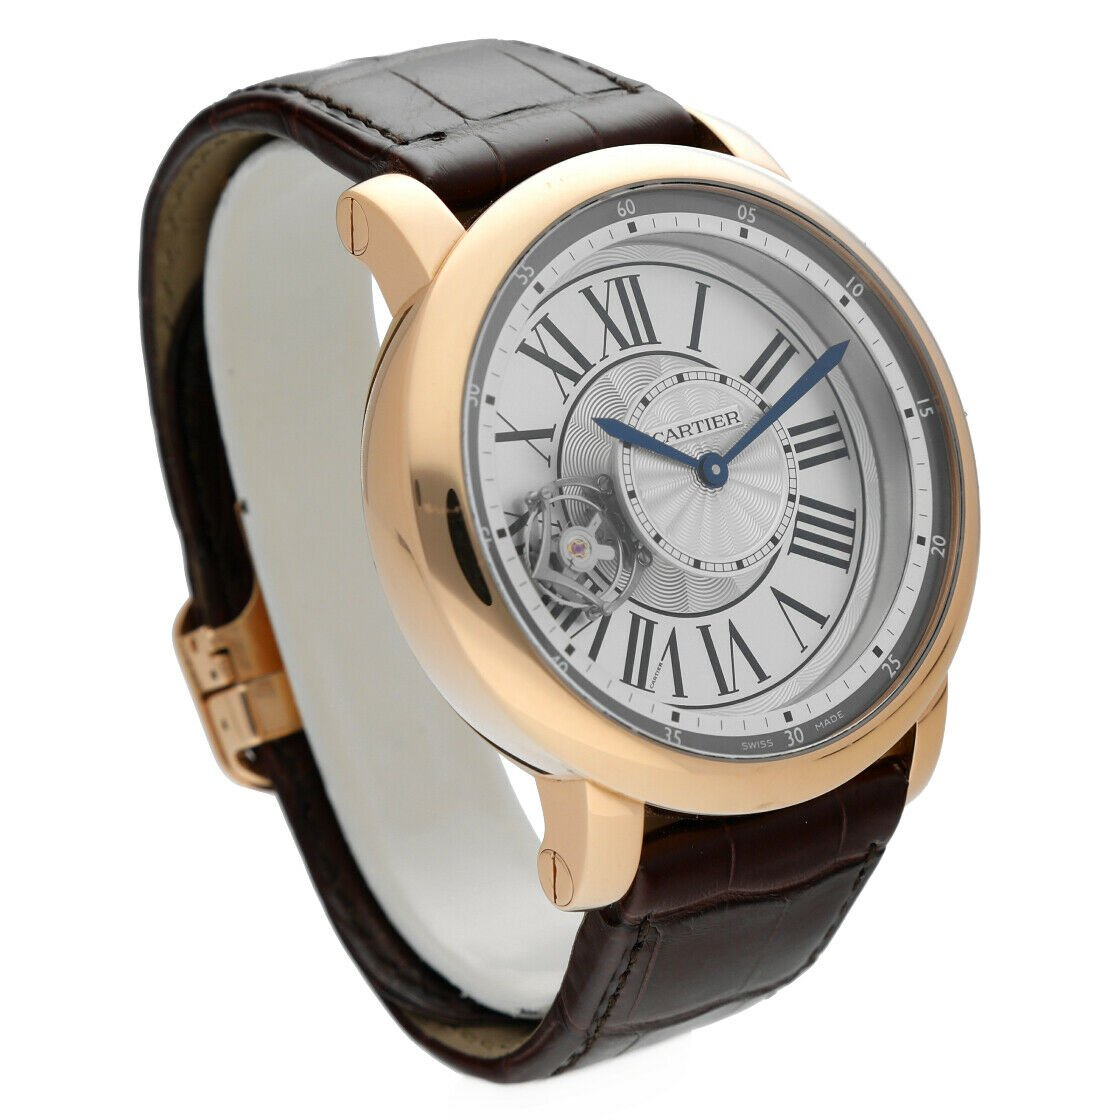 Cartier 3308 W1556205 Rotonde Astrotourbillon 18k Rose Gold Limited Mens Watch 124243384081 4